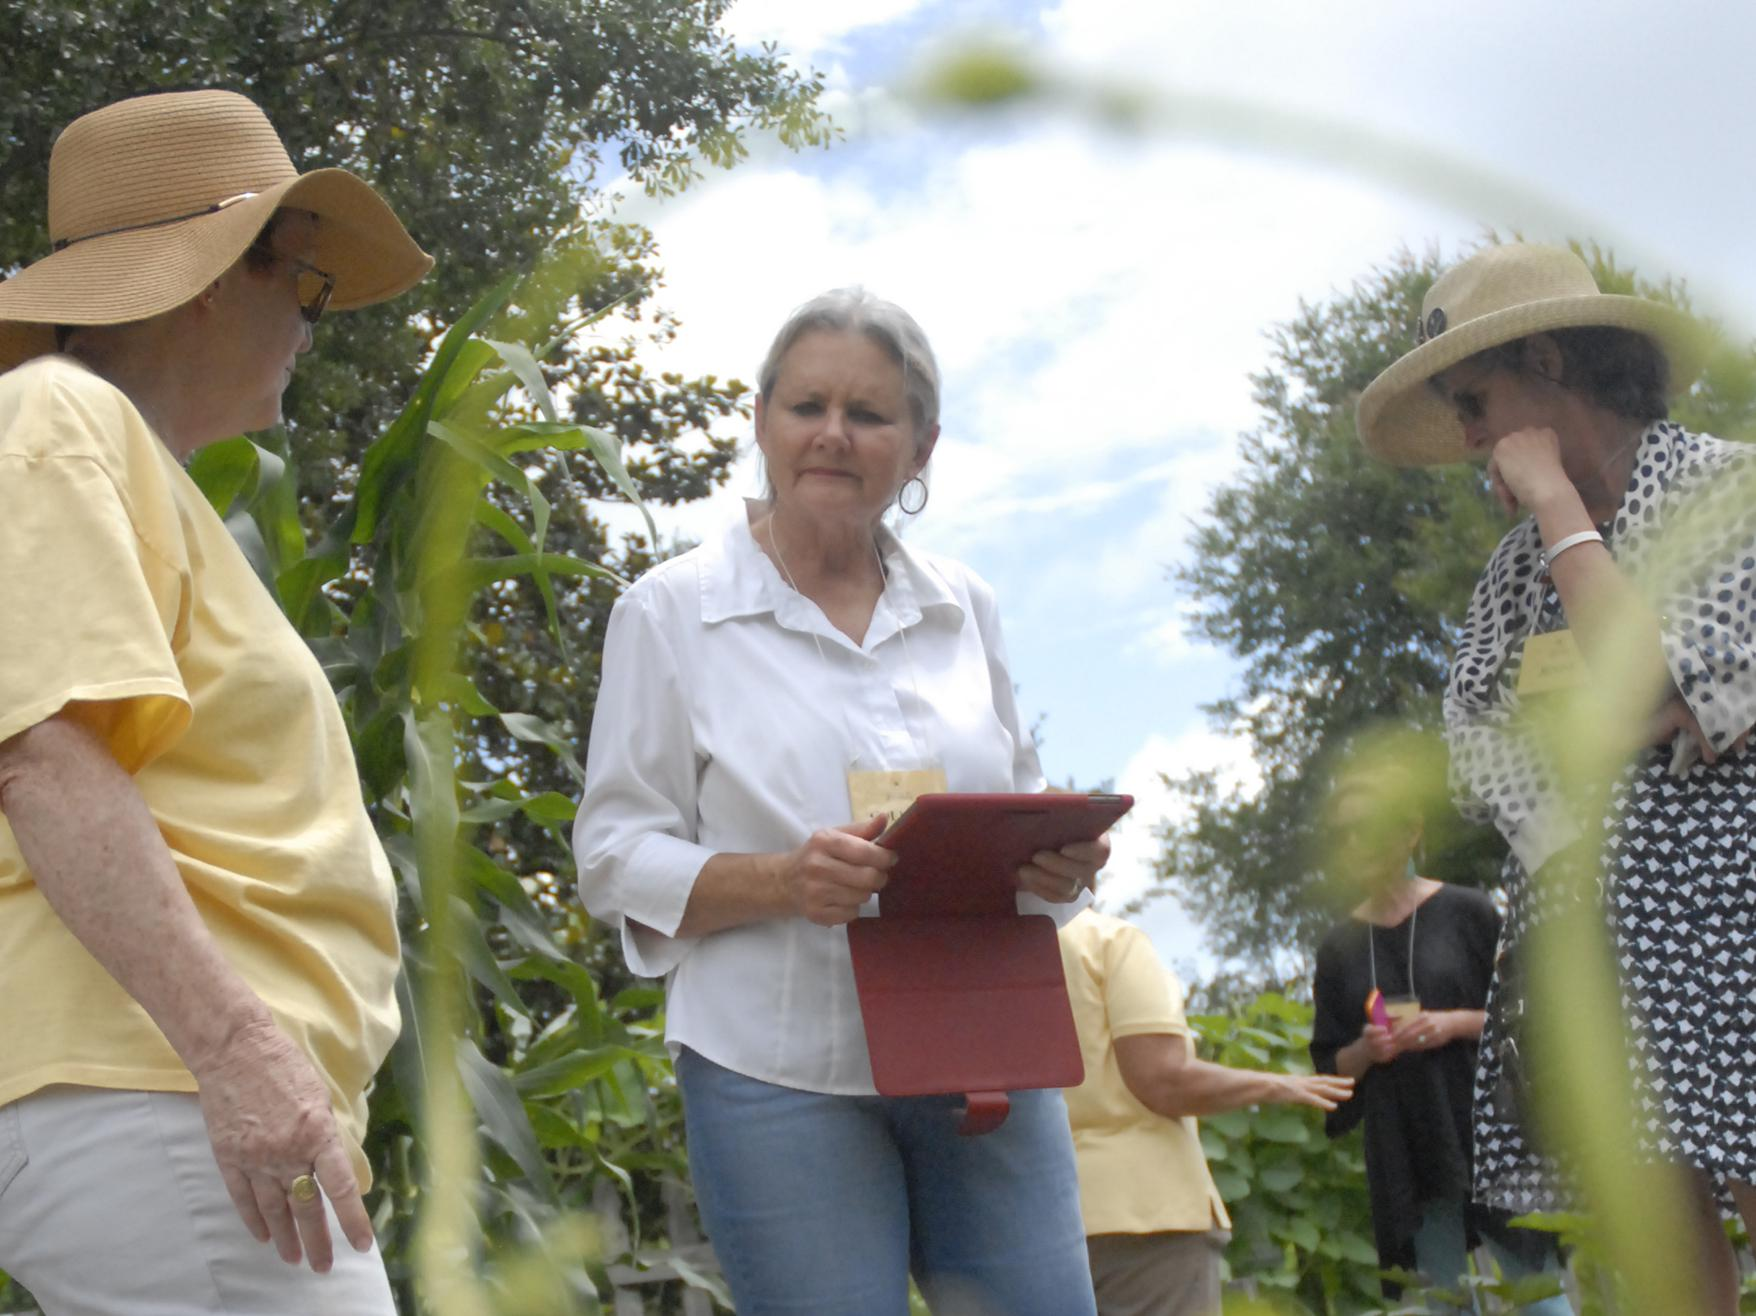 Colleen Wilkins, owner of Sunnyside in Natchez, gathers ideas while visiting the Southern Heritage Garden at the Vicksburg National Military Park on June 13, 2017. (Photo by MSU Extension Service/Bonnie Coblentz)